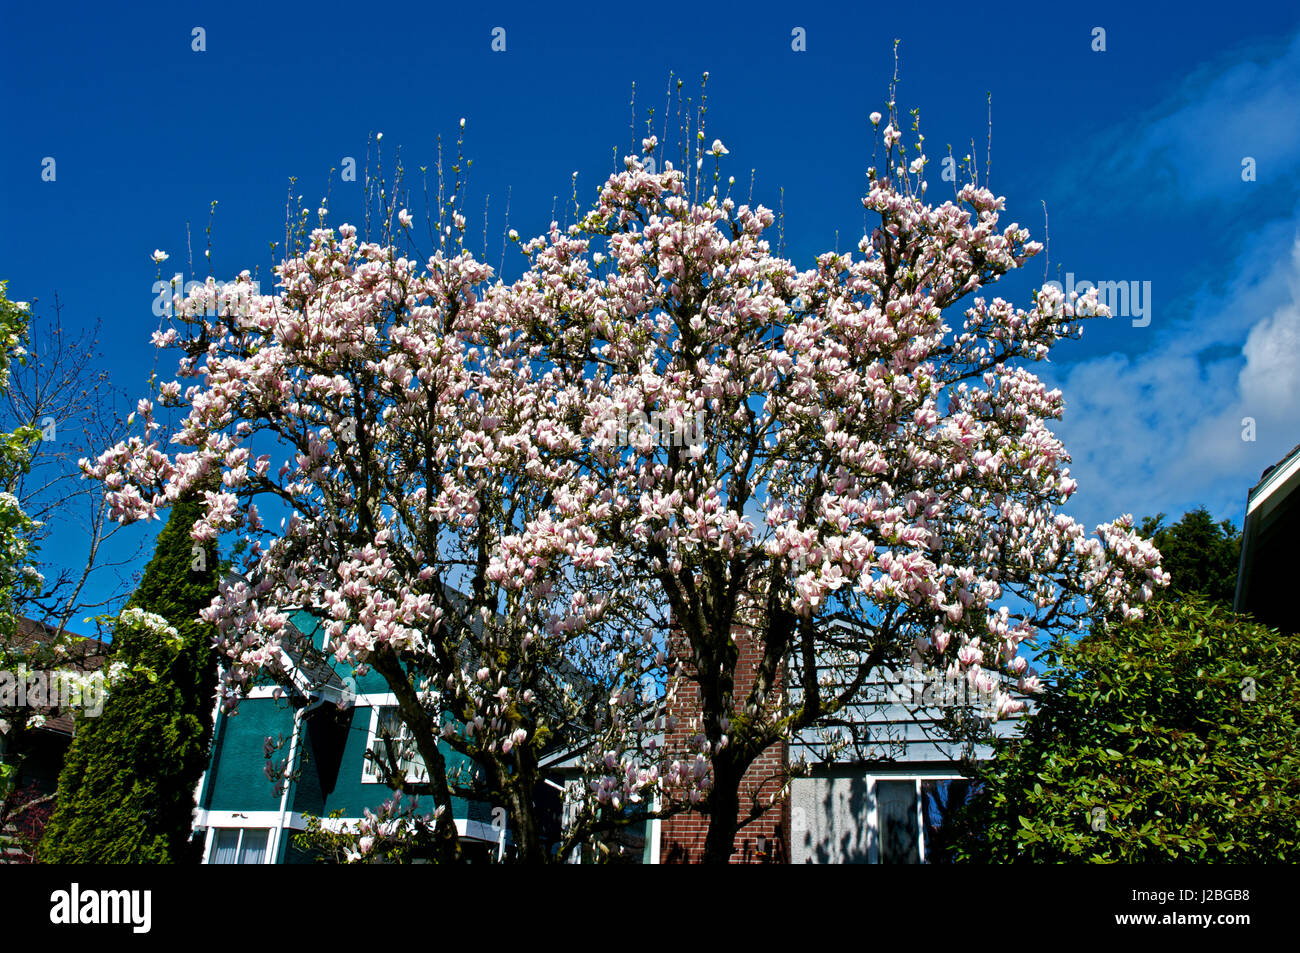 Magnolia blossoms in spring time bloom Stock Photo